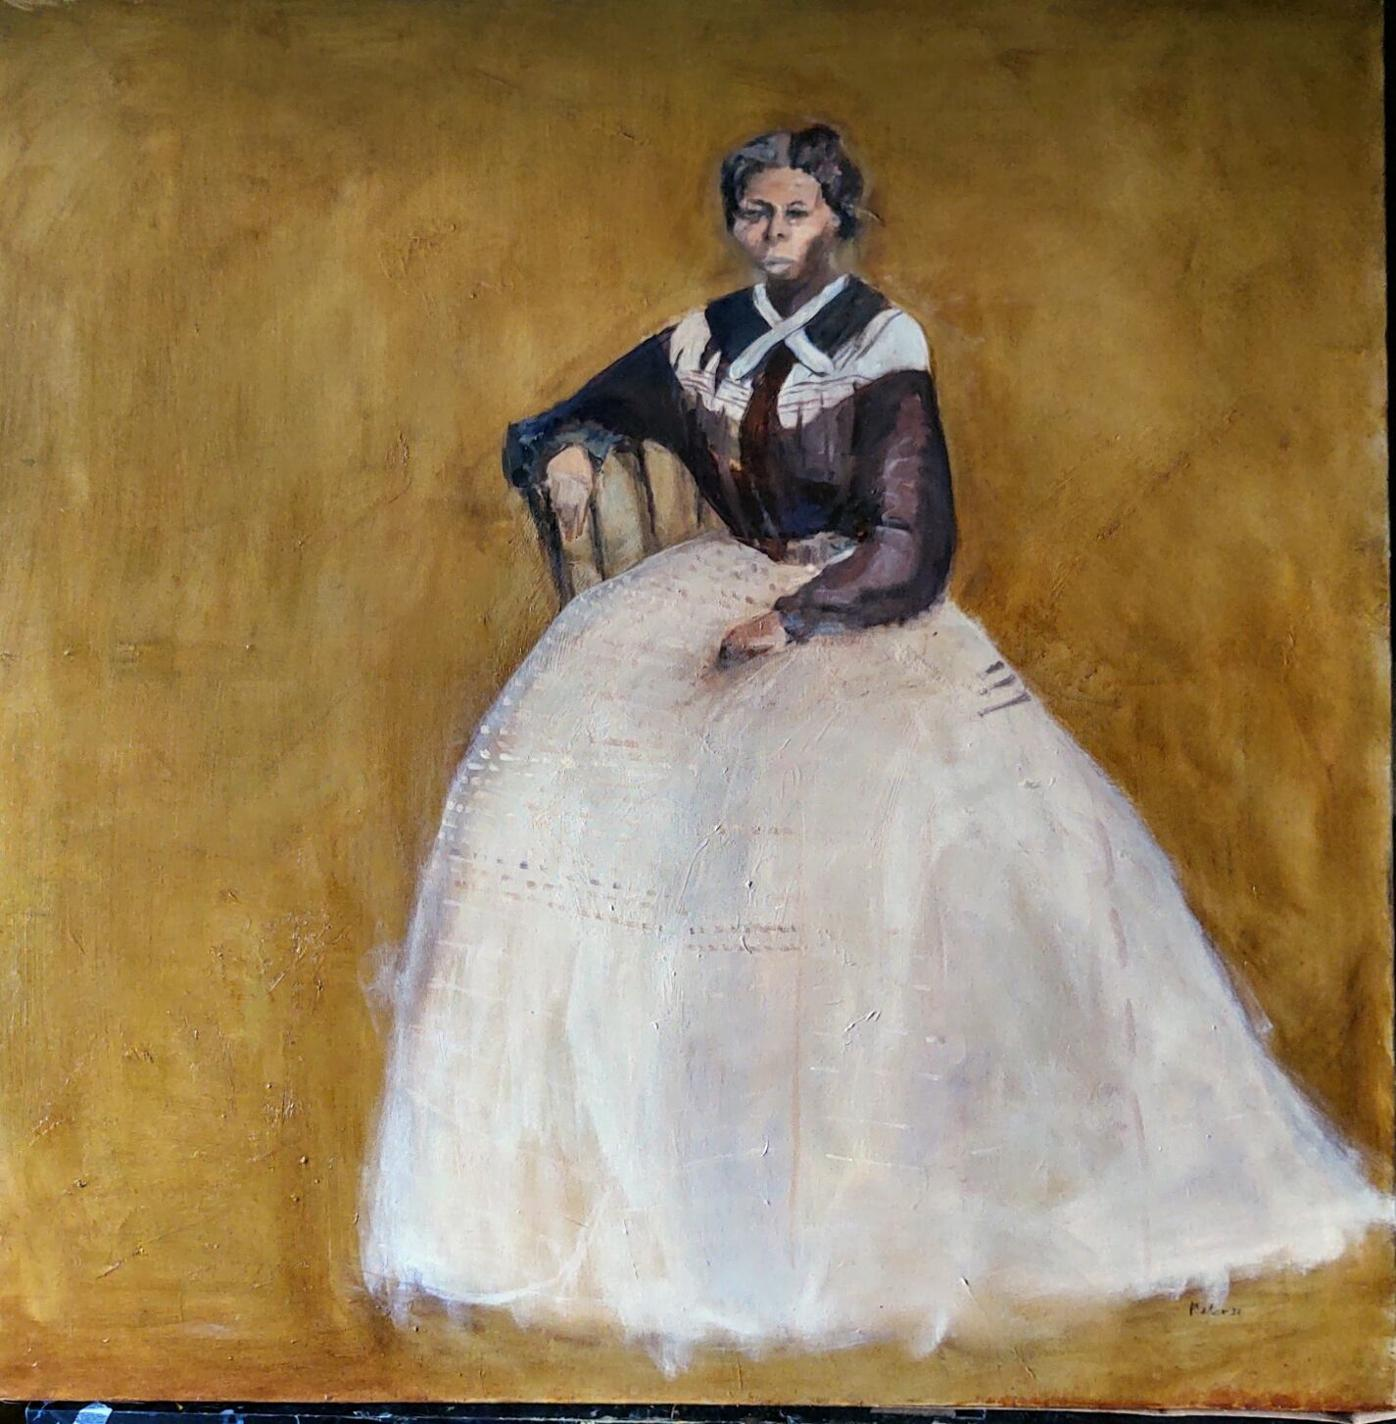 A_Terry Plater_Harriet painting.jpg